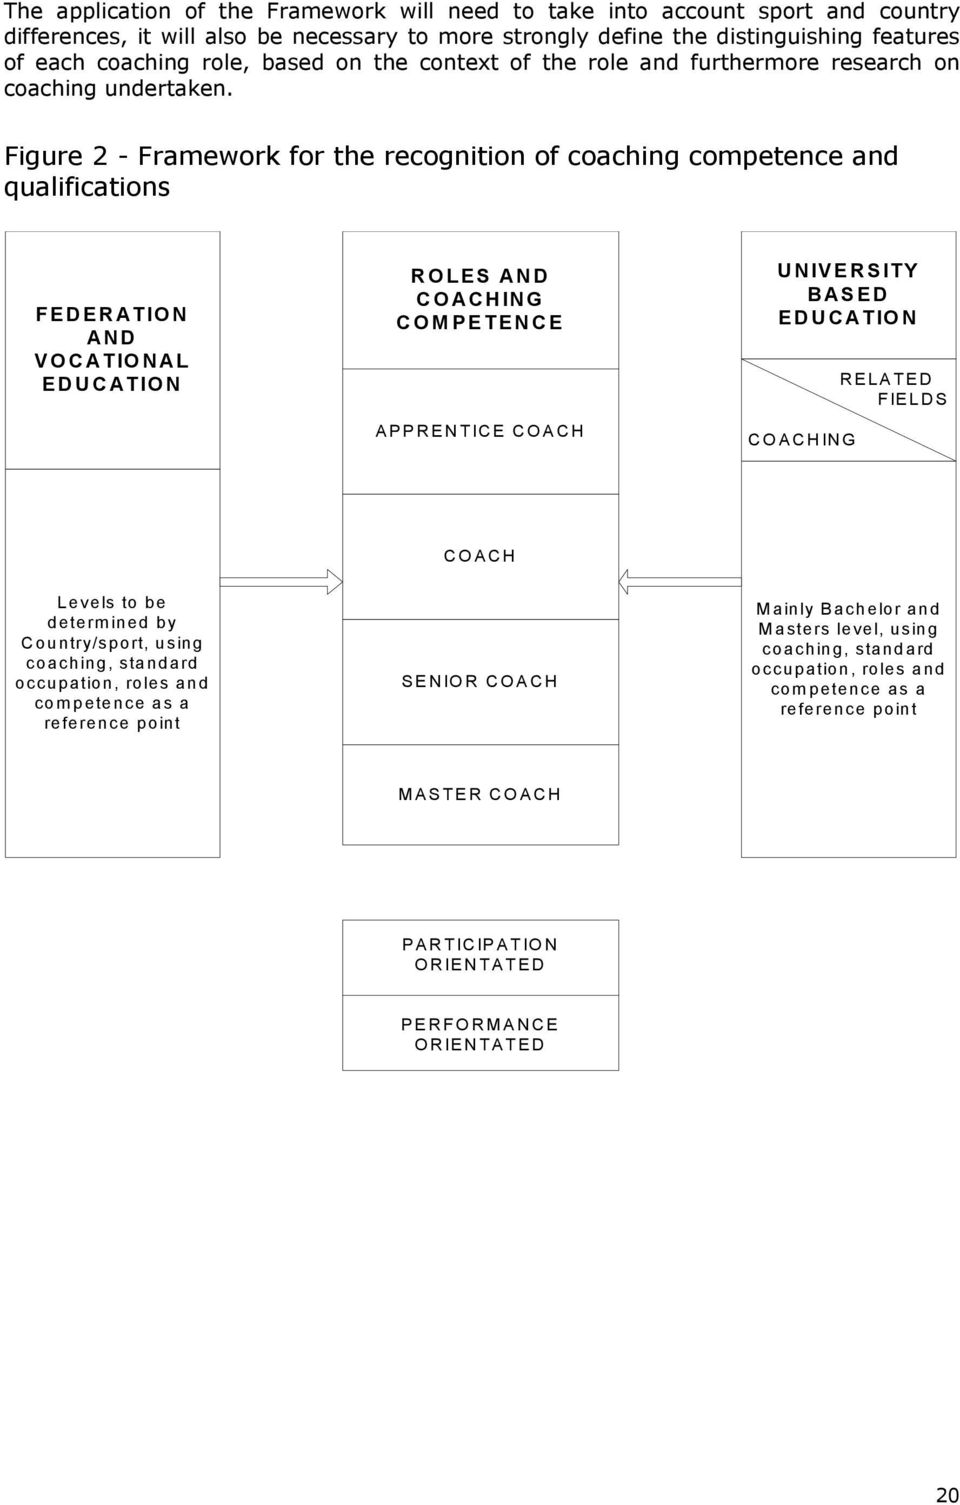 Figure 2 - Framework for the recognition of coaching competence and qualifications FEDERATION AND VOCATIONAL EDUCATION ROLES AND COACHING COMPETENCE APPRENTICE COACH UNIVERSITY BASED EDUCATION